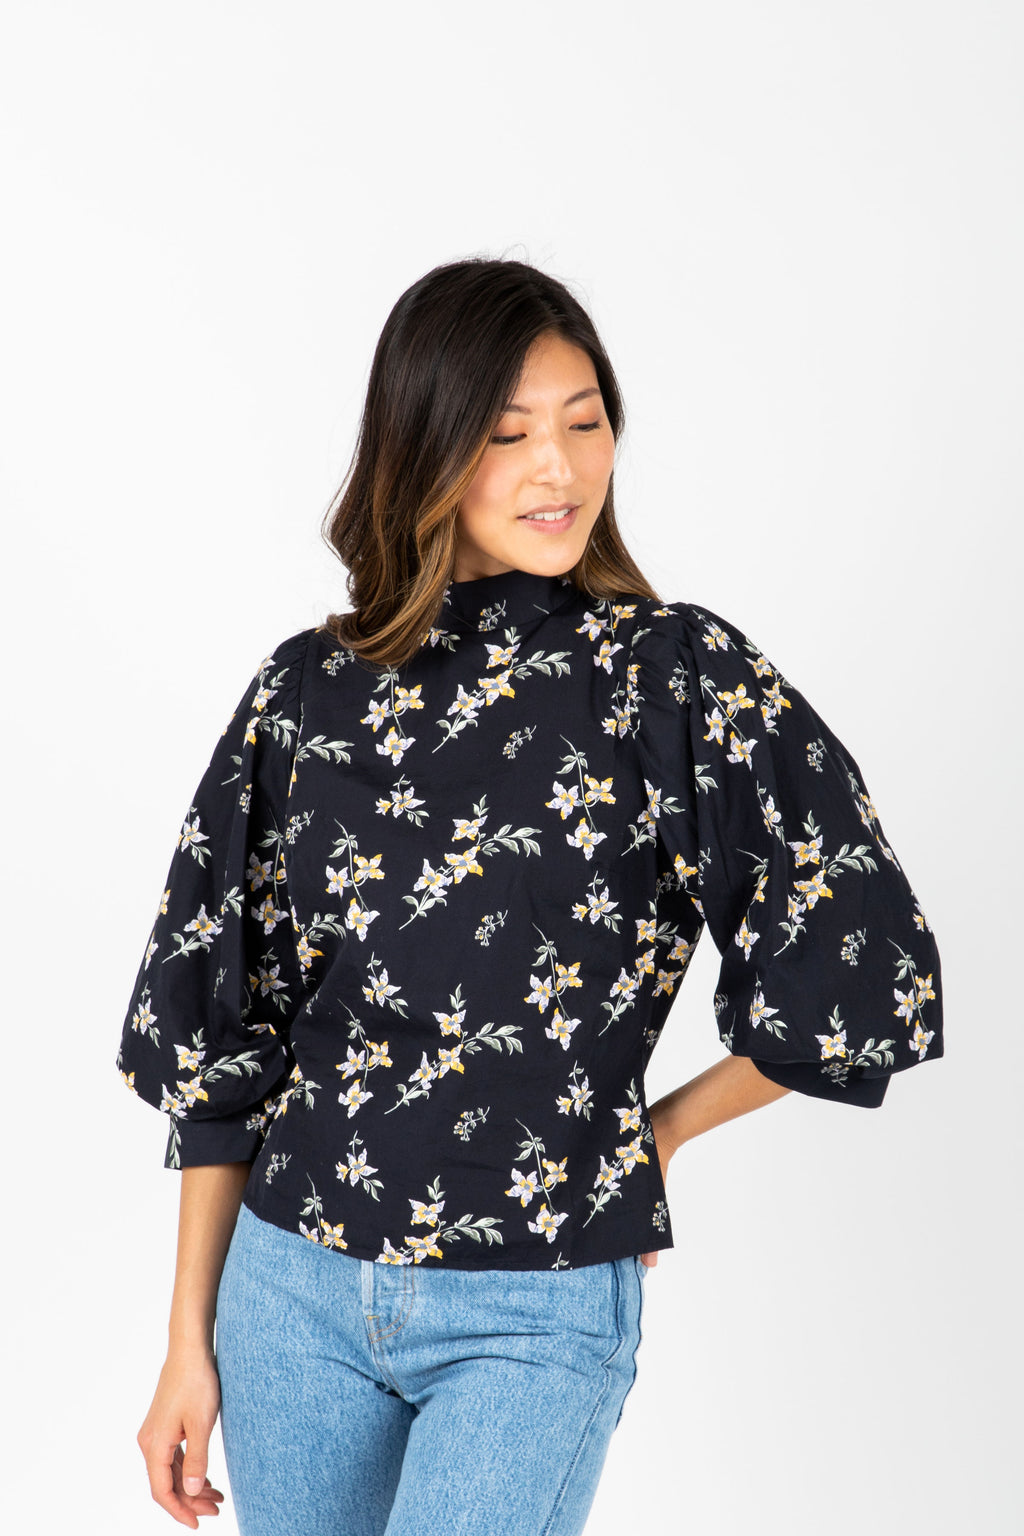 Levi's: High Neck Floral Balloon Sleeve Blouse in Navy, studio shoot; front view